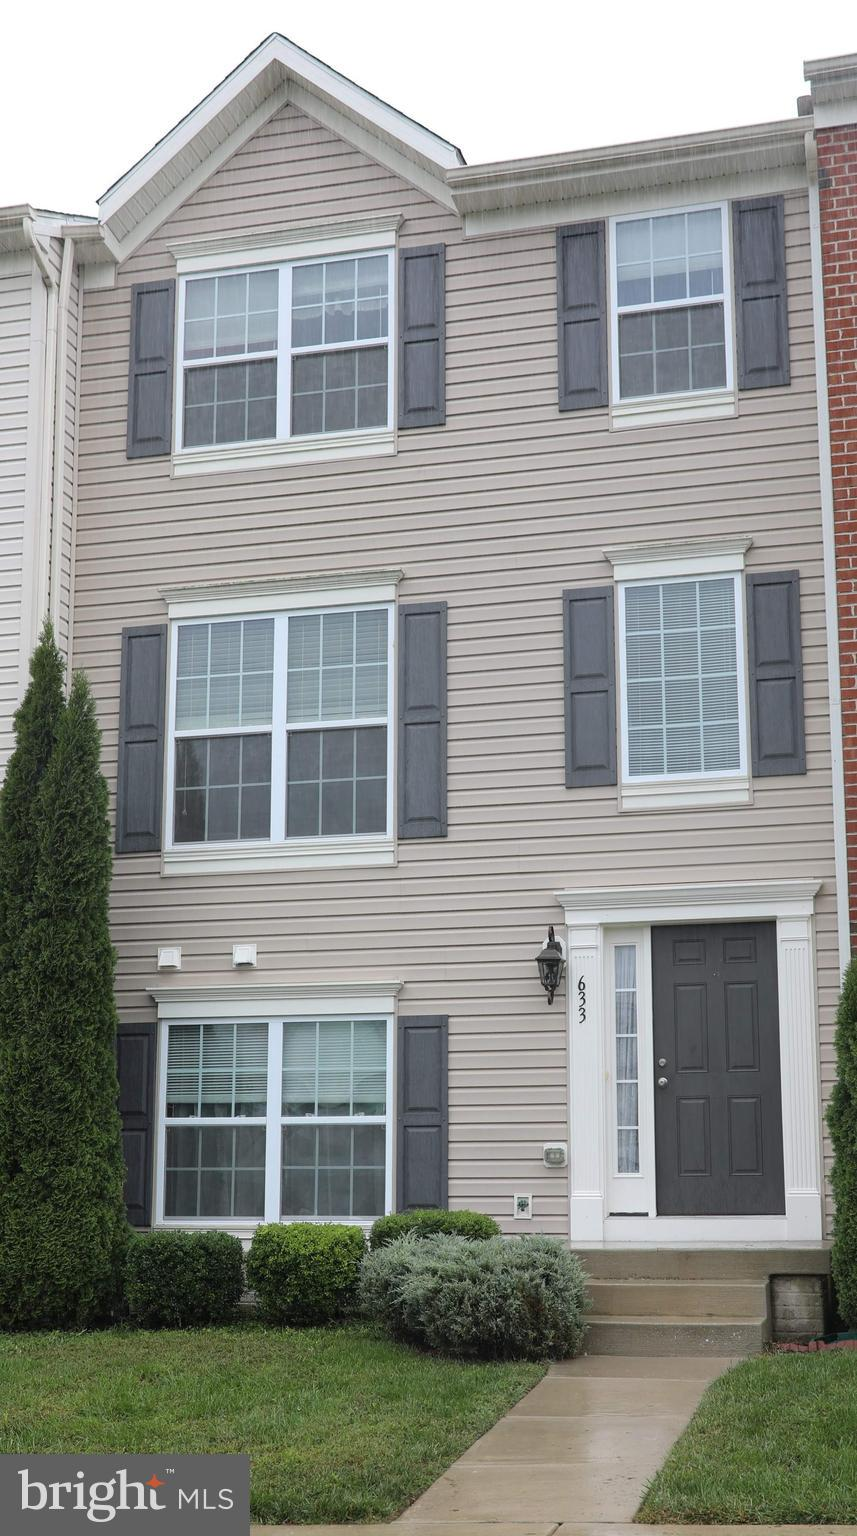 Three (possibly four) bedroom townhouse in like new condition.   Features include:  Large rooms, gra